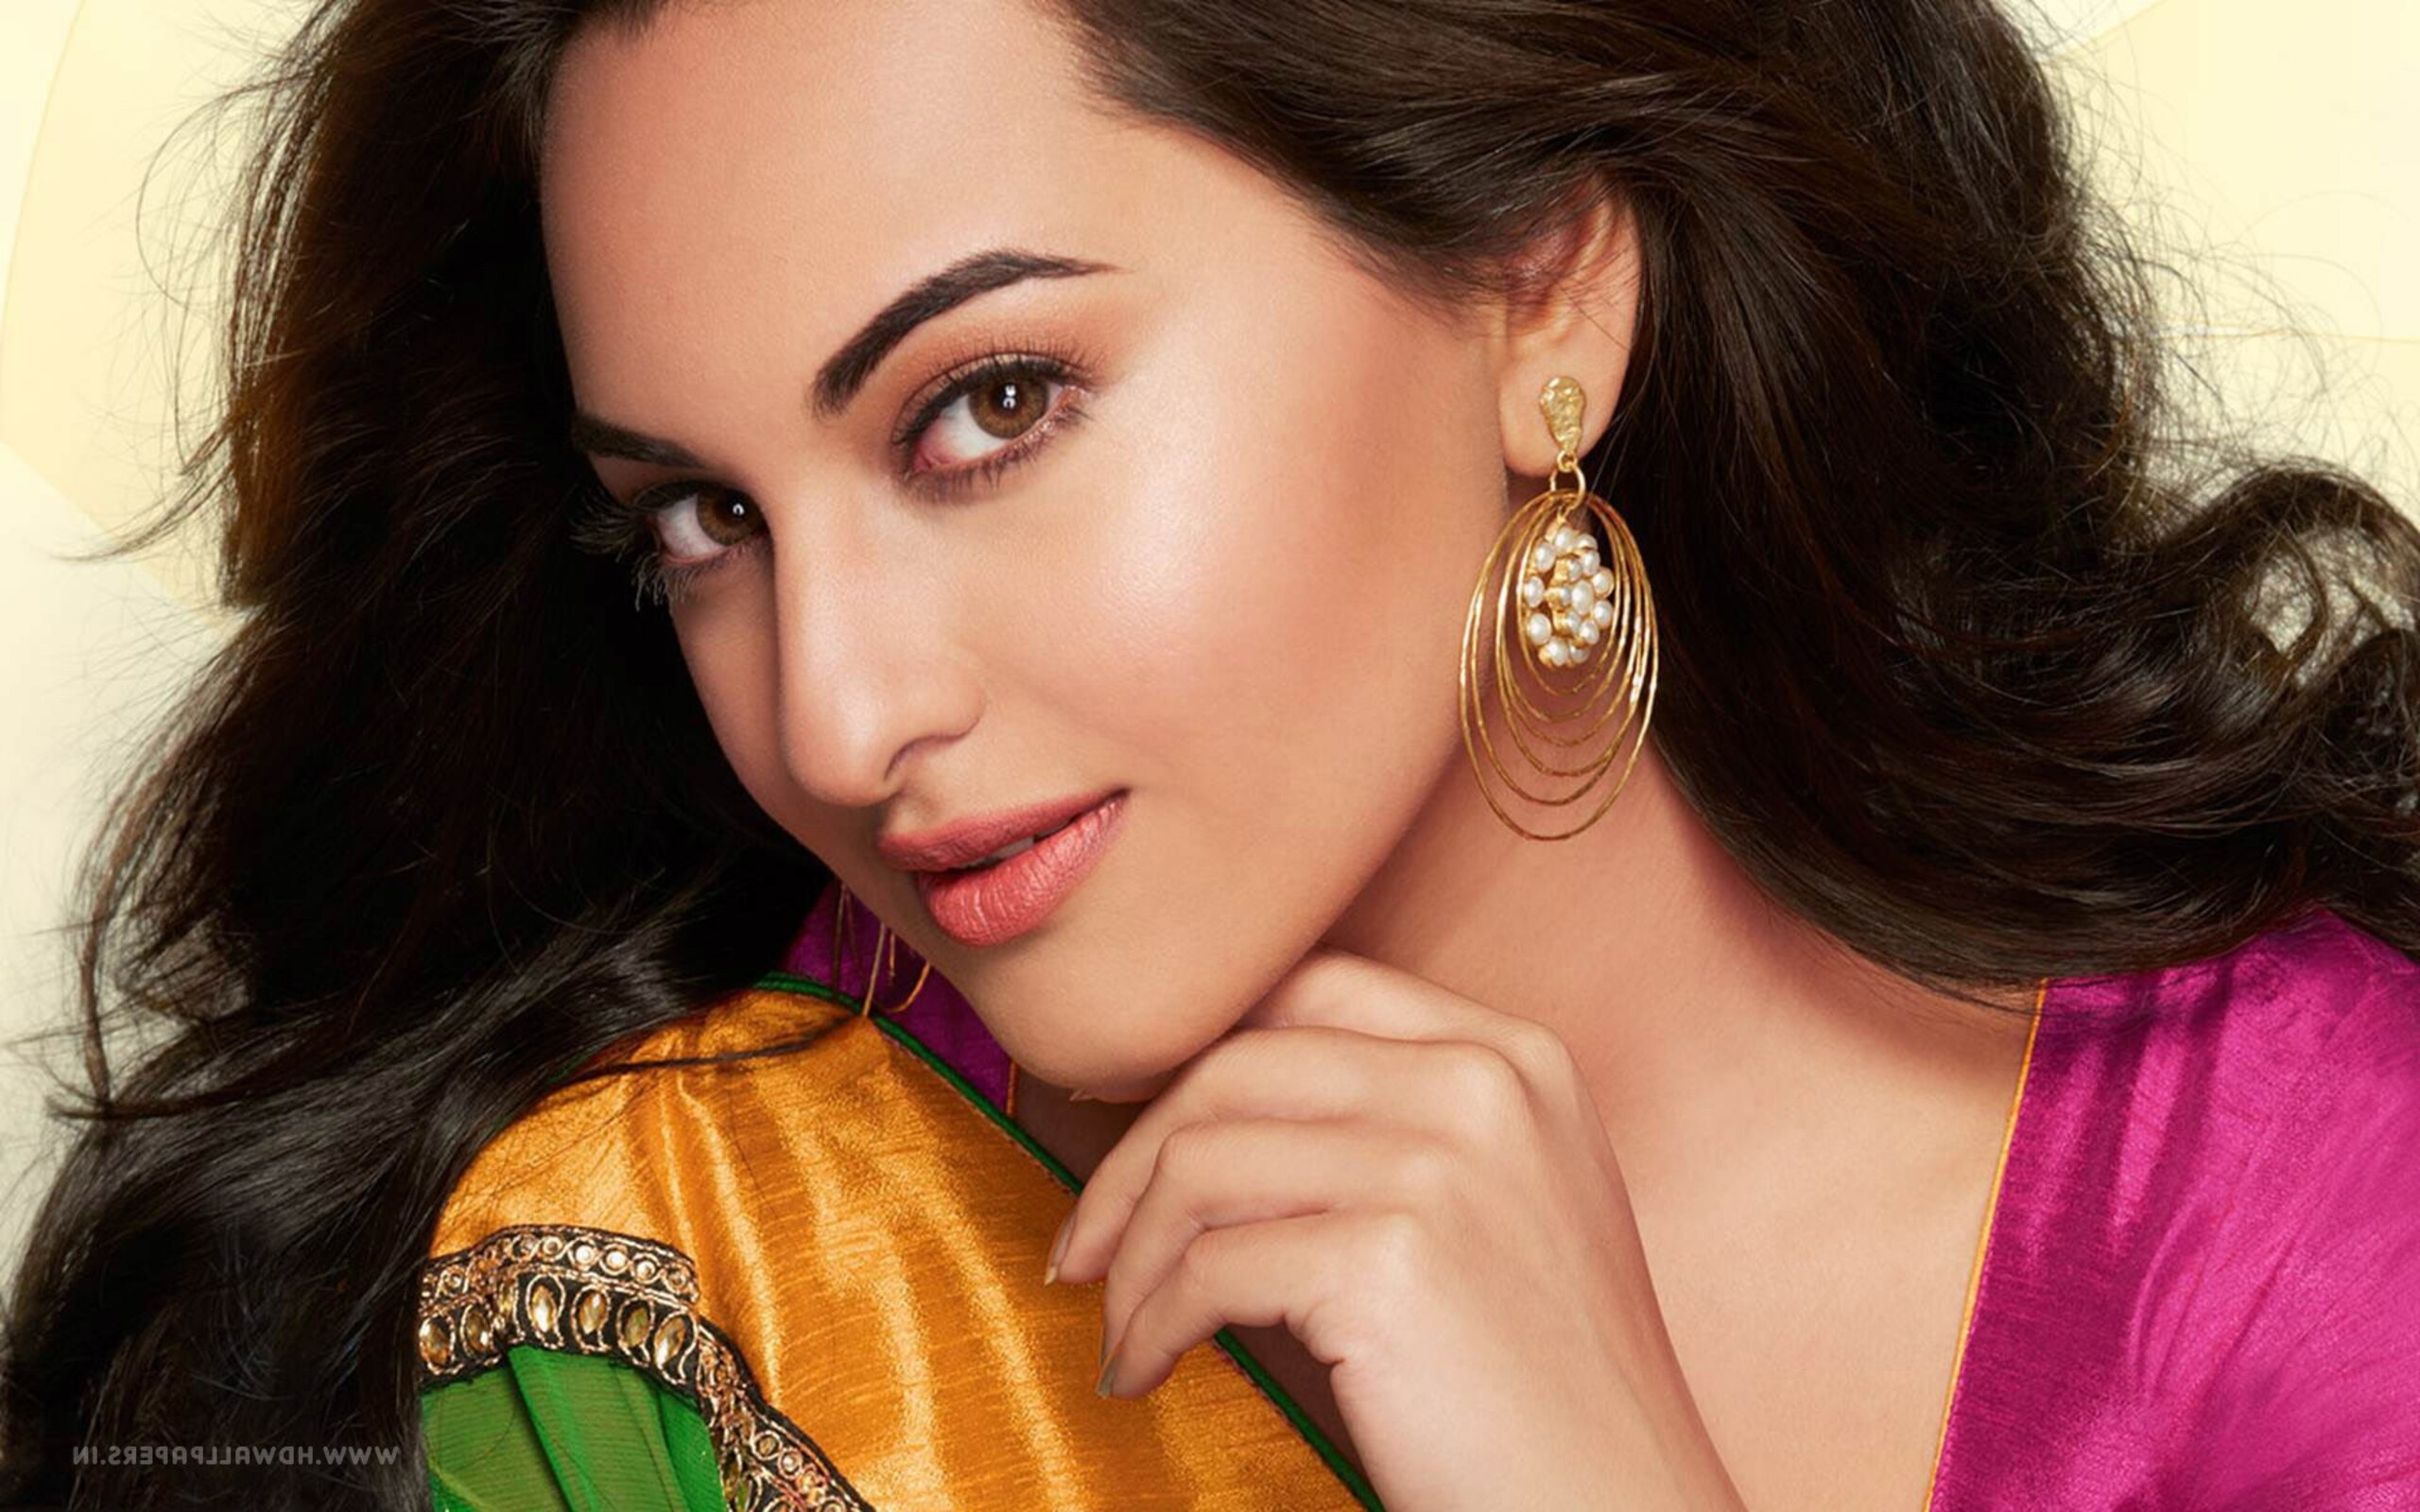 2560x1600 sonakshi sinha 7 2560x1600 resolution hd 4k wallpapers